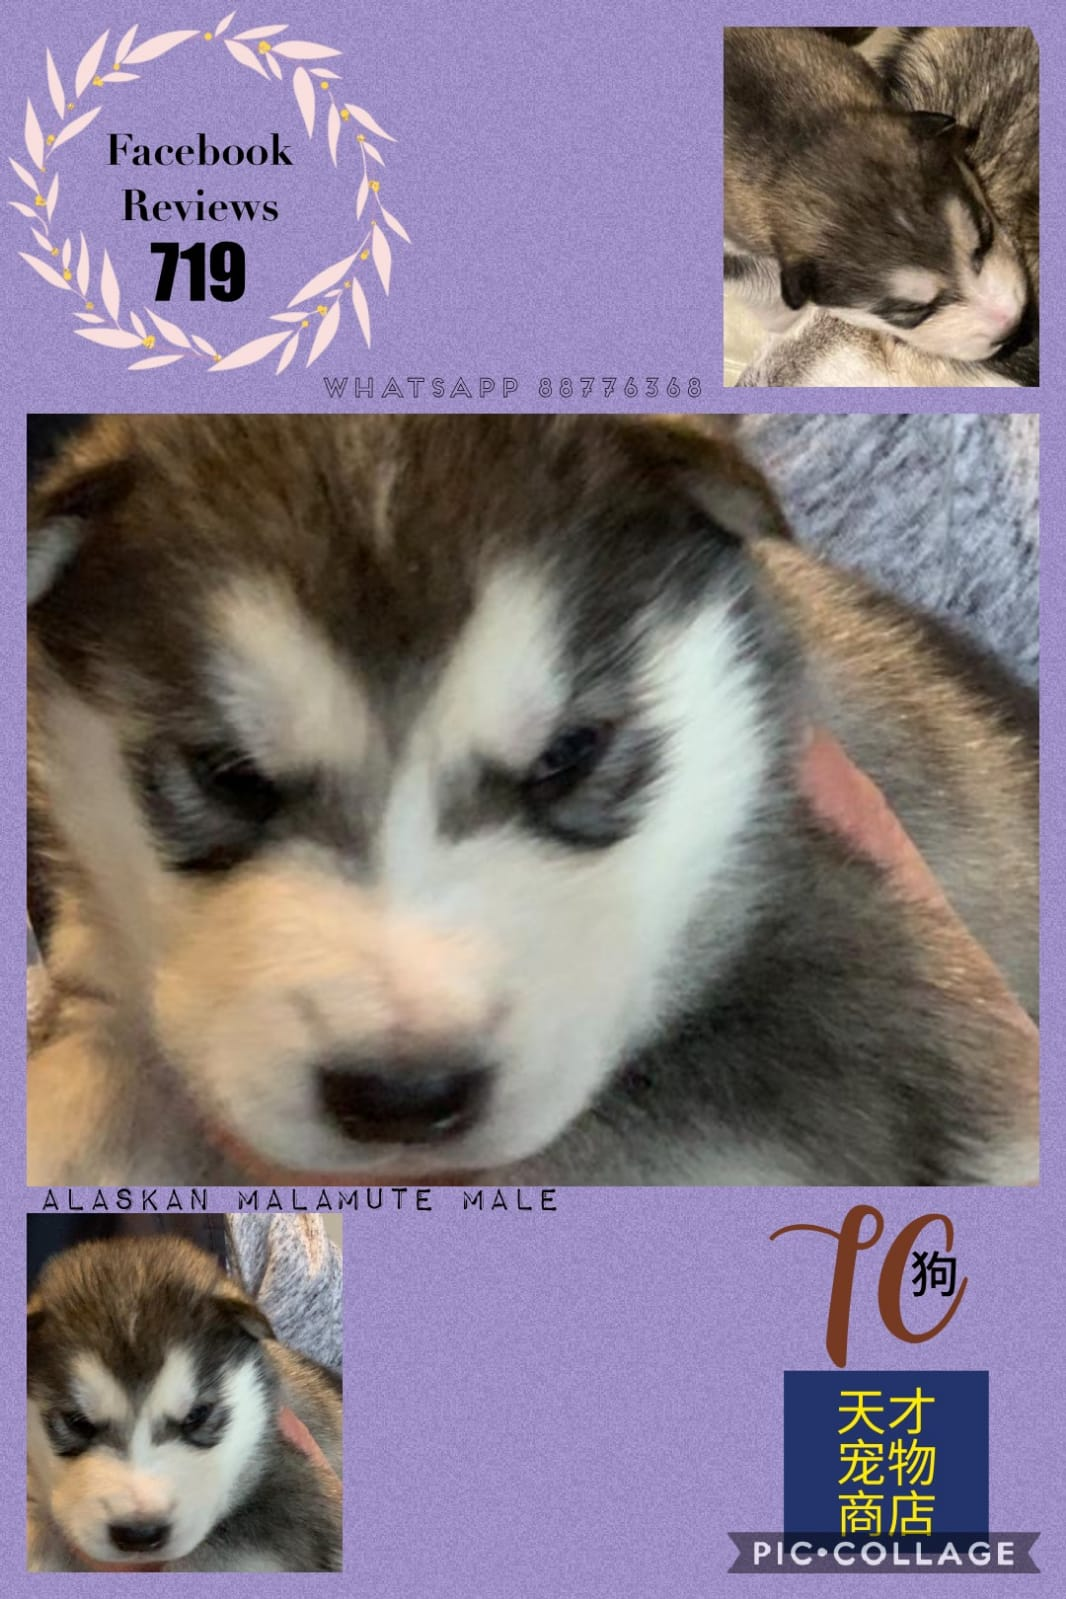 Imported Alaskan Malamute Puppies For Sale Singapore